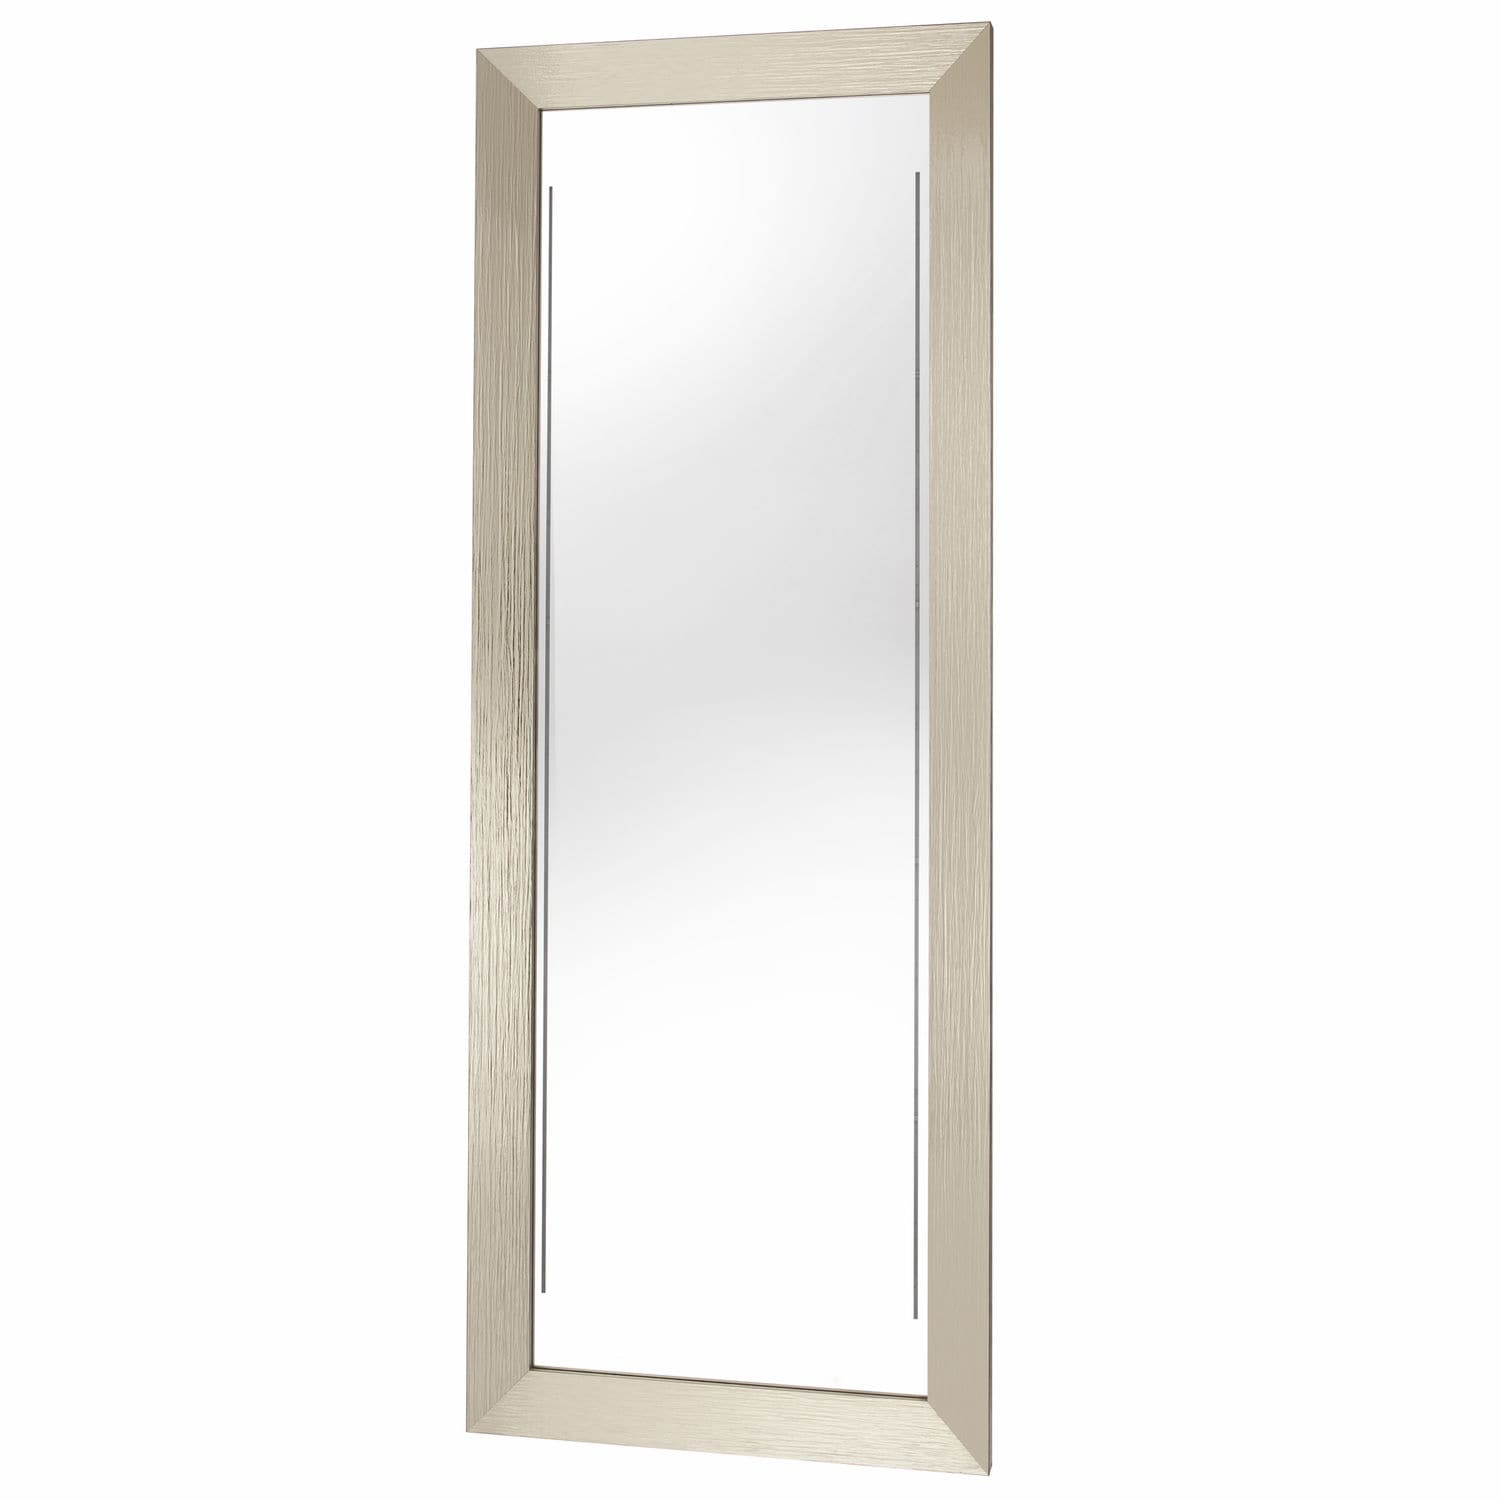 miroir encadrement metal id es de d coration int rieure french decor